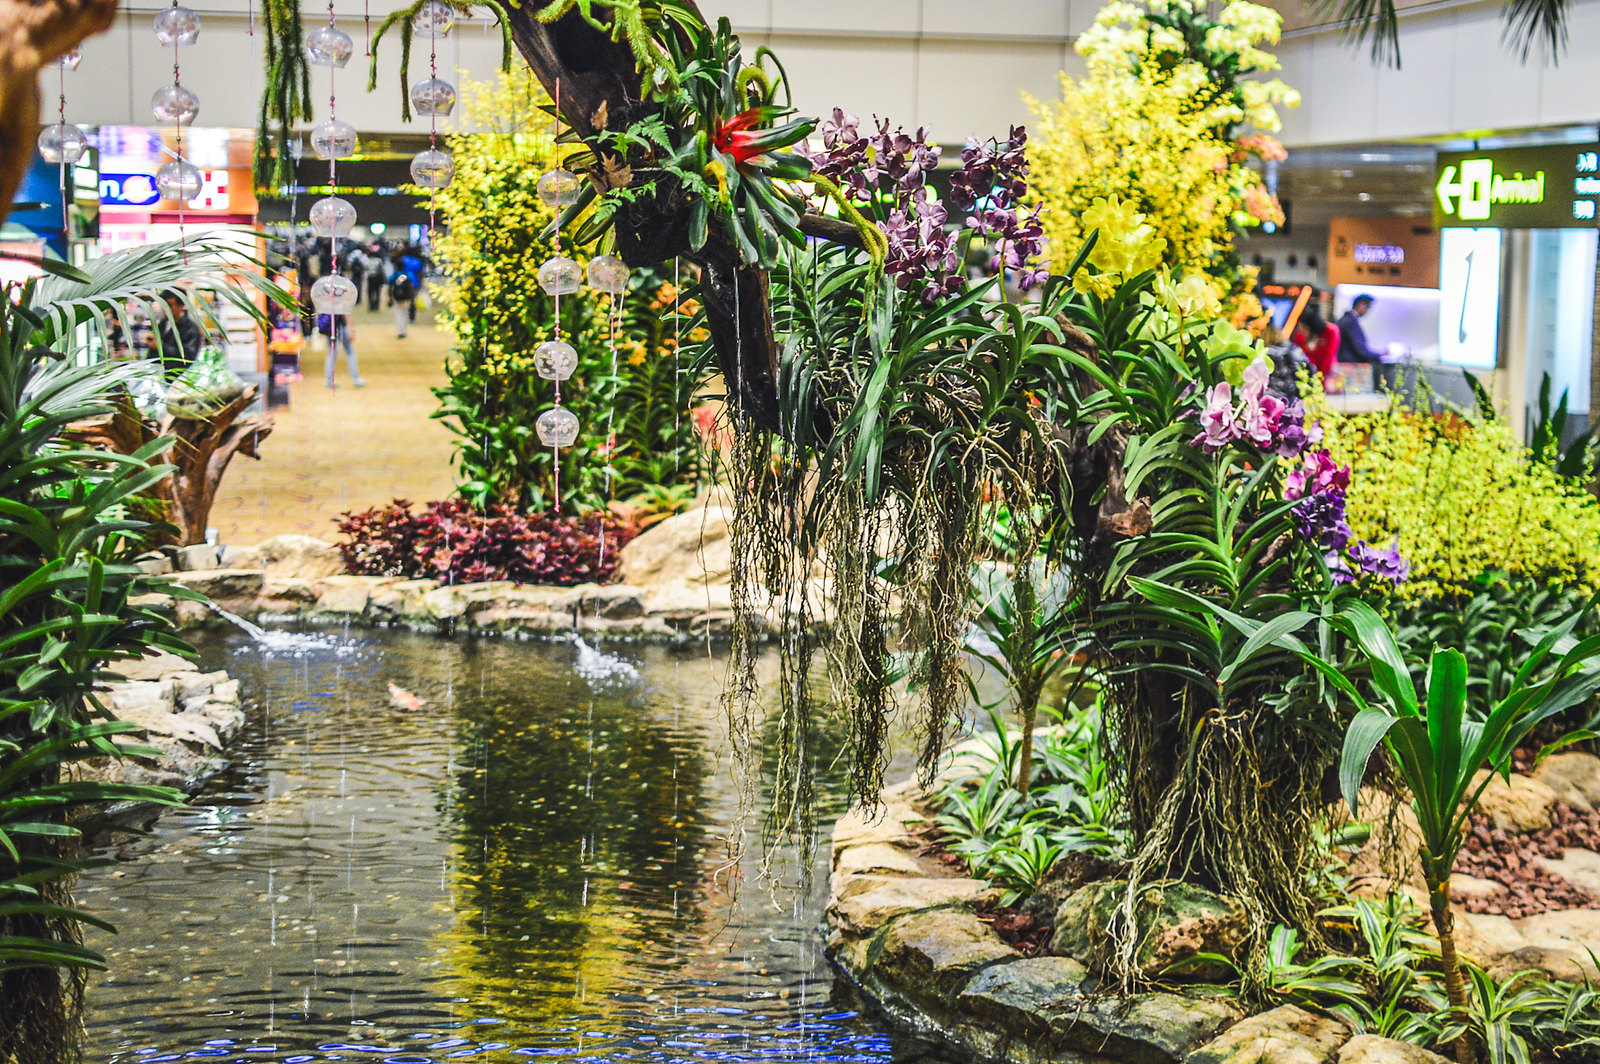 Singapore Changi Airport Orchid Garden